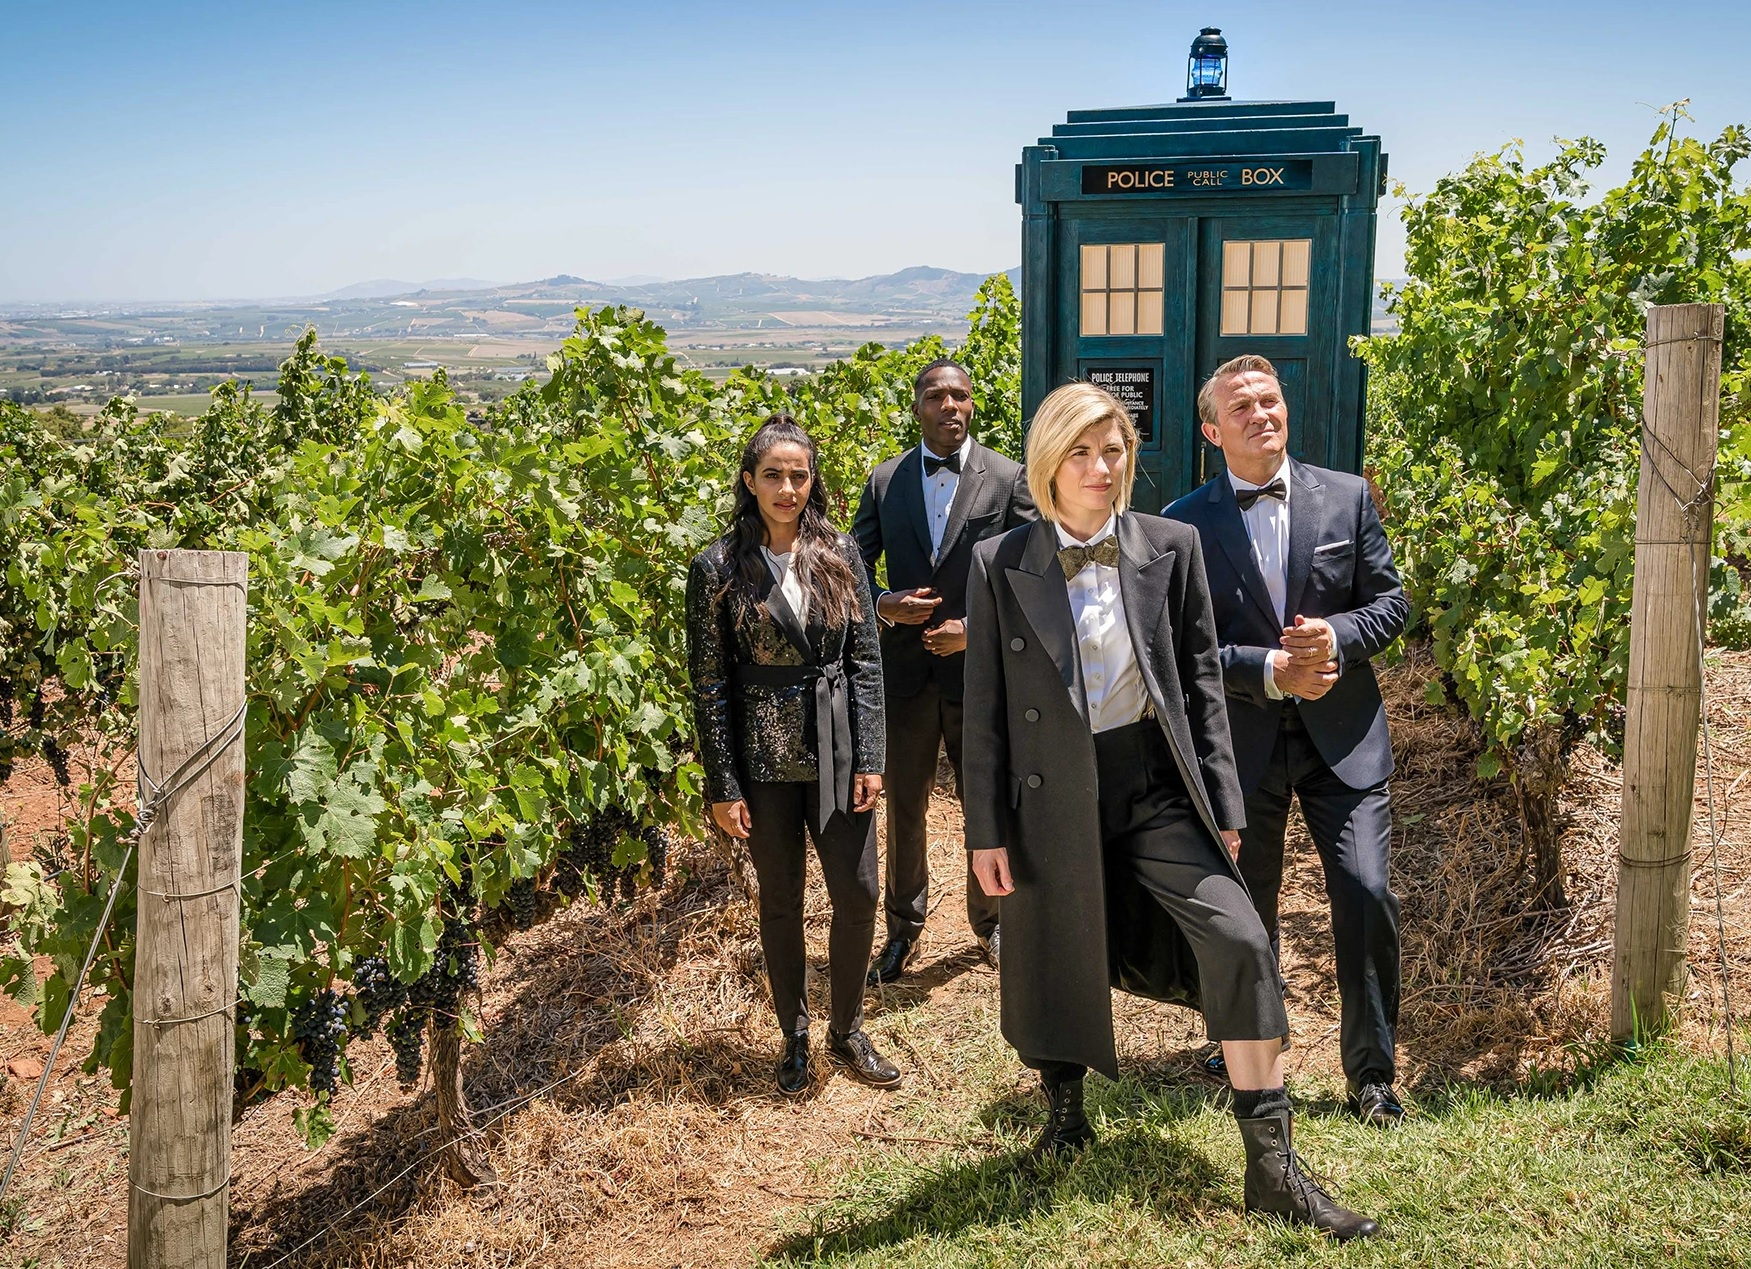 Here's What The Doctor Who Companion Thought of Spyfall, Part 1